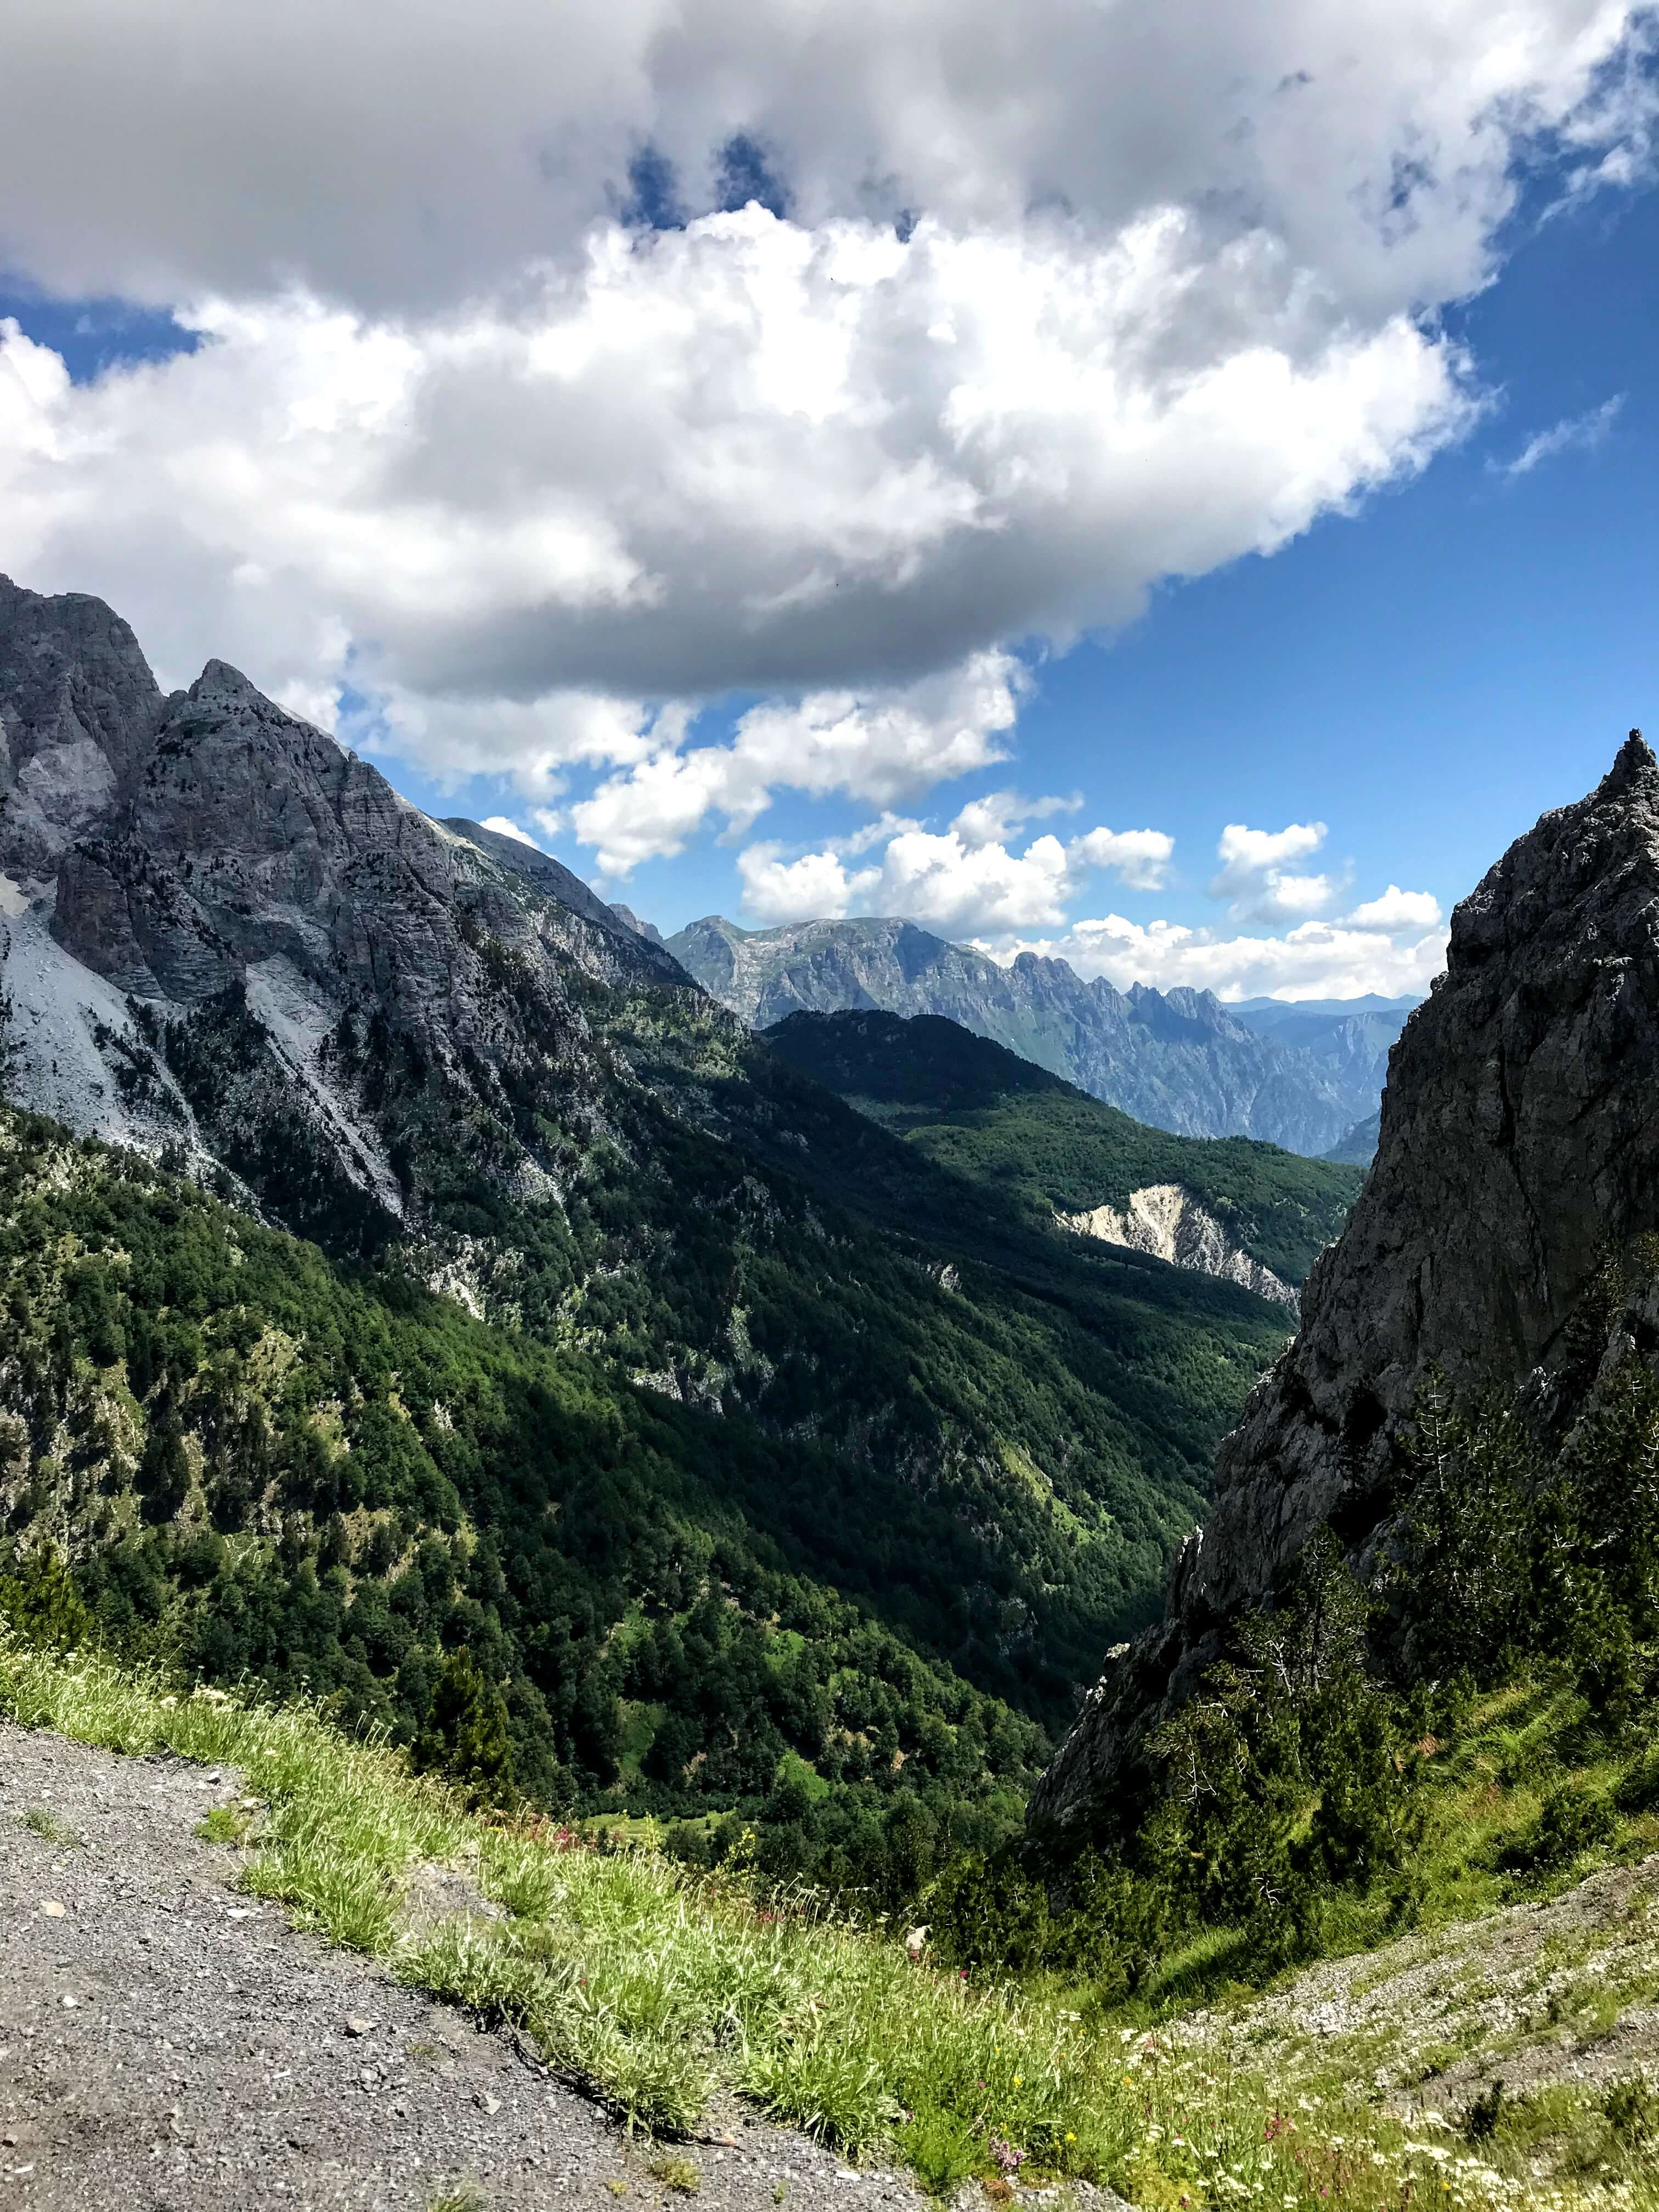 View of Valbona Valley from Valbona Peak